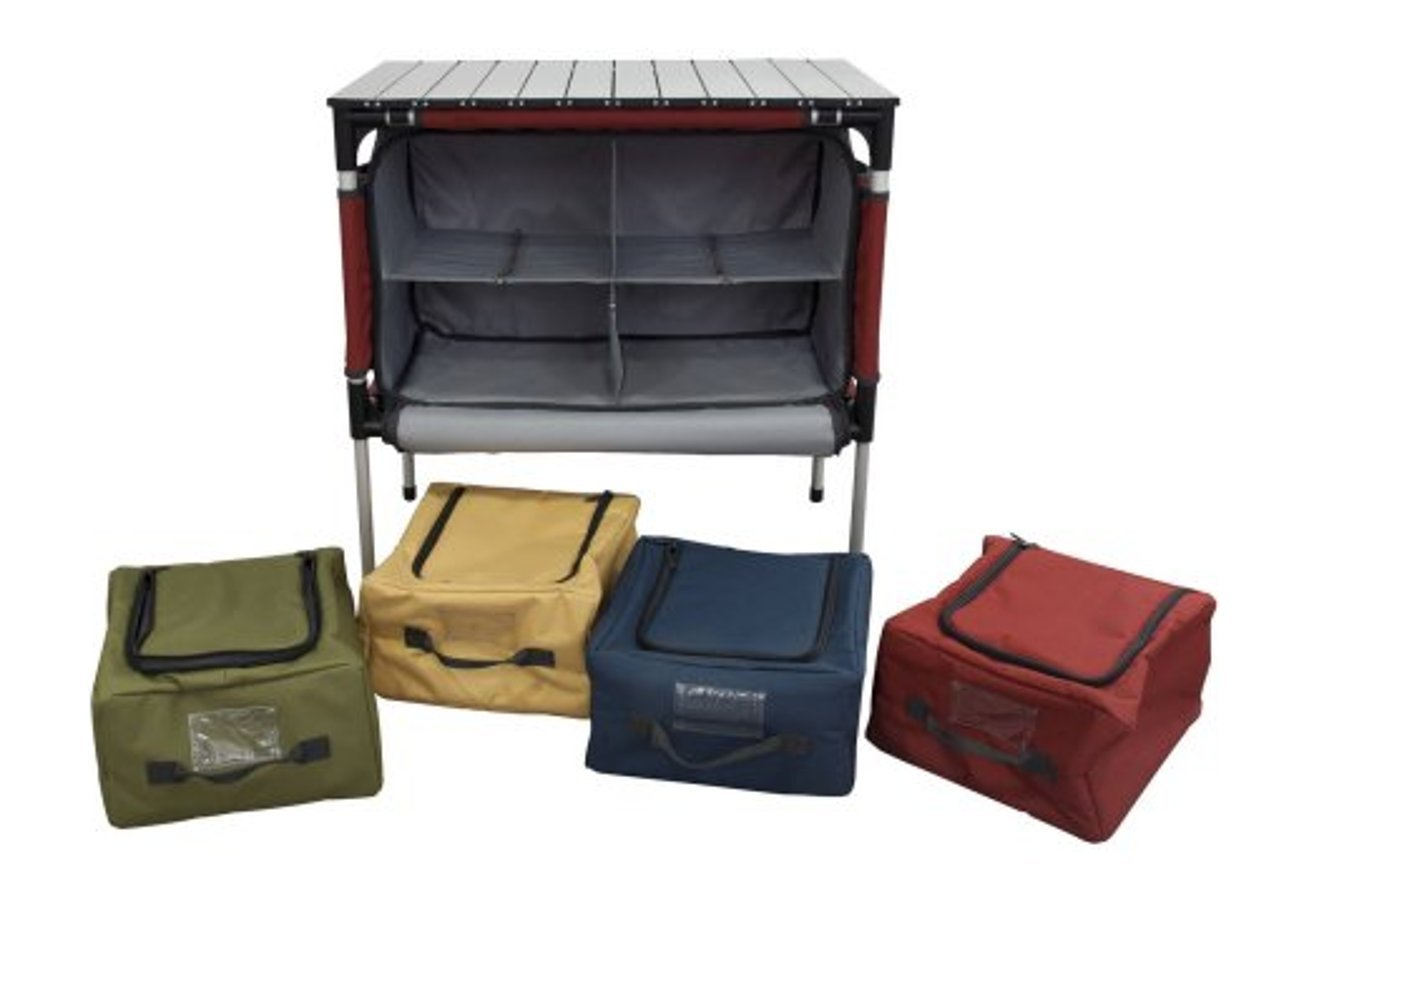 Portable Prep Station, Aluminum Material, Multicolor, Lightweight, Easy Transportation, Stylish Design, Easy Assembly, Ideal For Outdoor Spaces, Easy Cleaning, Sturdy And Durable Construction & E-Book